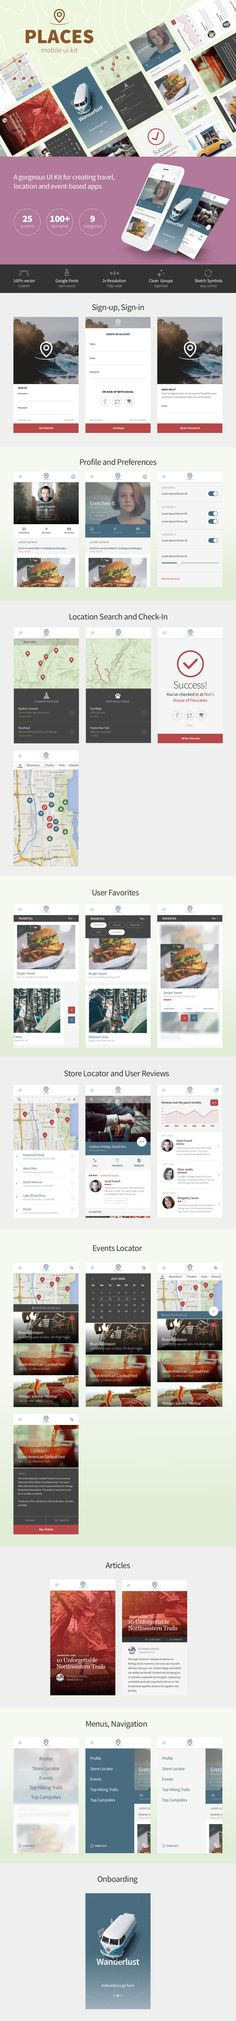 Places Mobile UI Kit (Sketch)